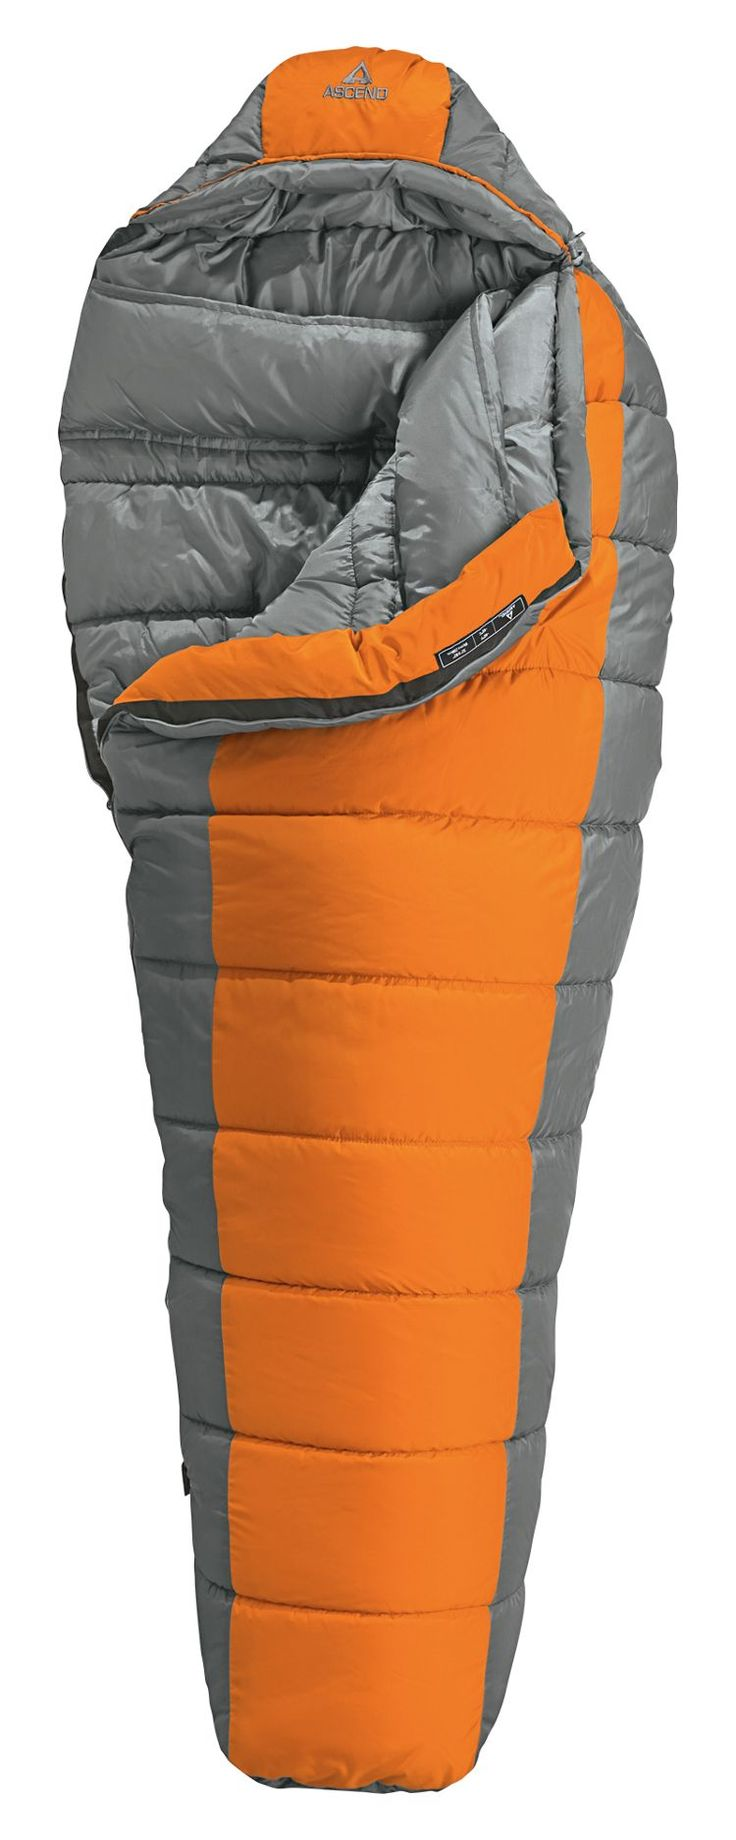 Ascend™ -40º Mummy Sleeping Bag | Bass Pro Shops // Knowing Brydon and his extreme outdoor habits... we're gonna need to need two of those... winter camping here we come *sigh* i have the worst circulation...